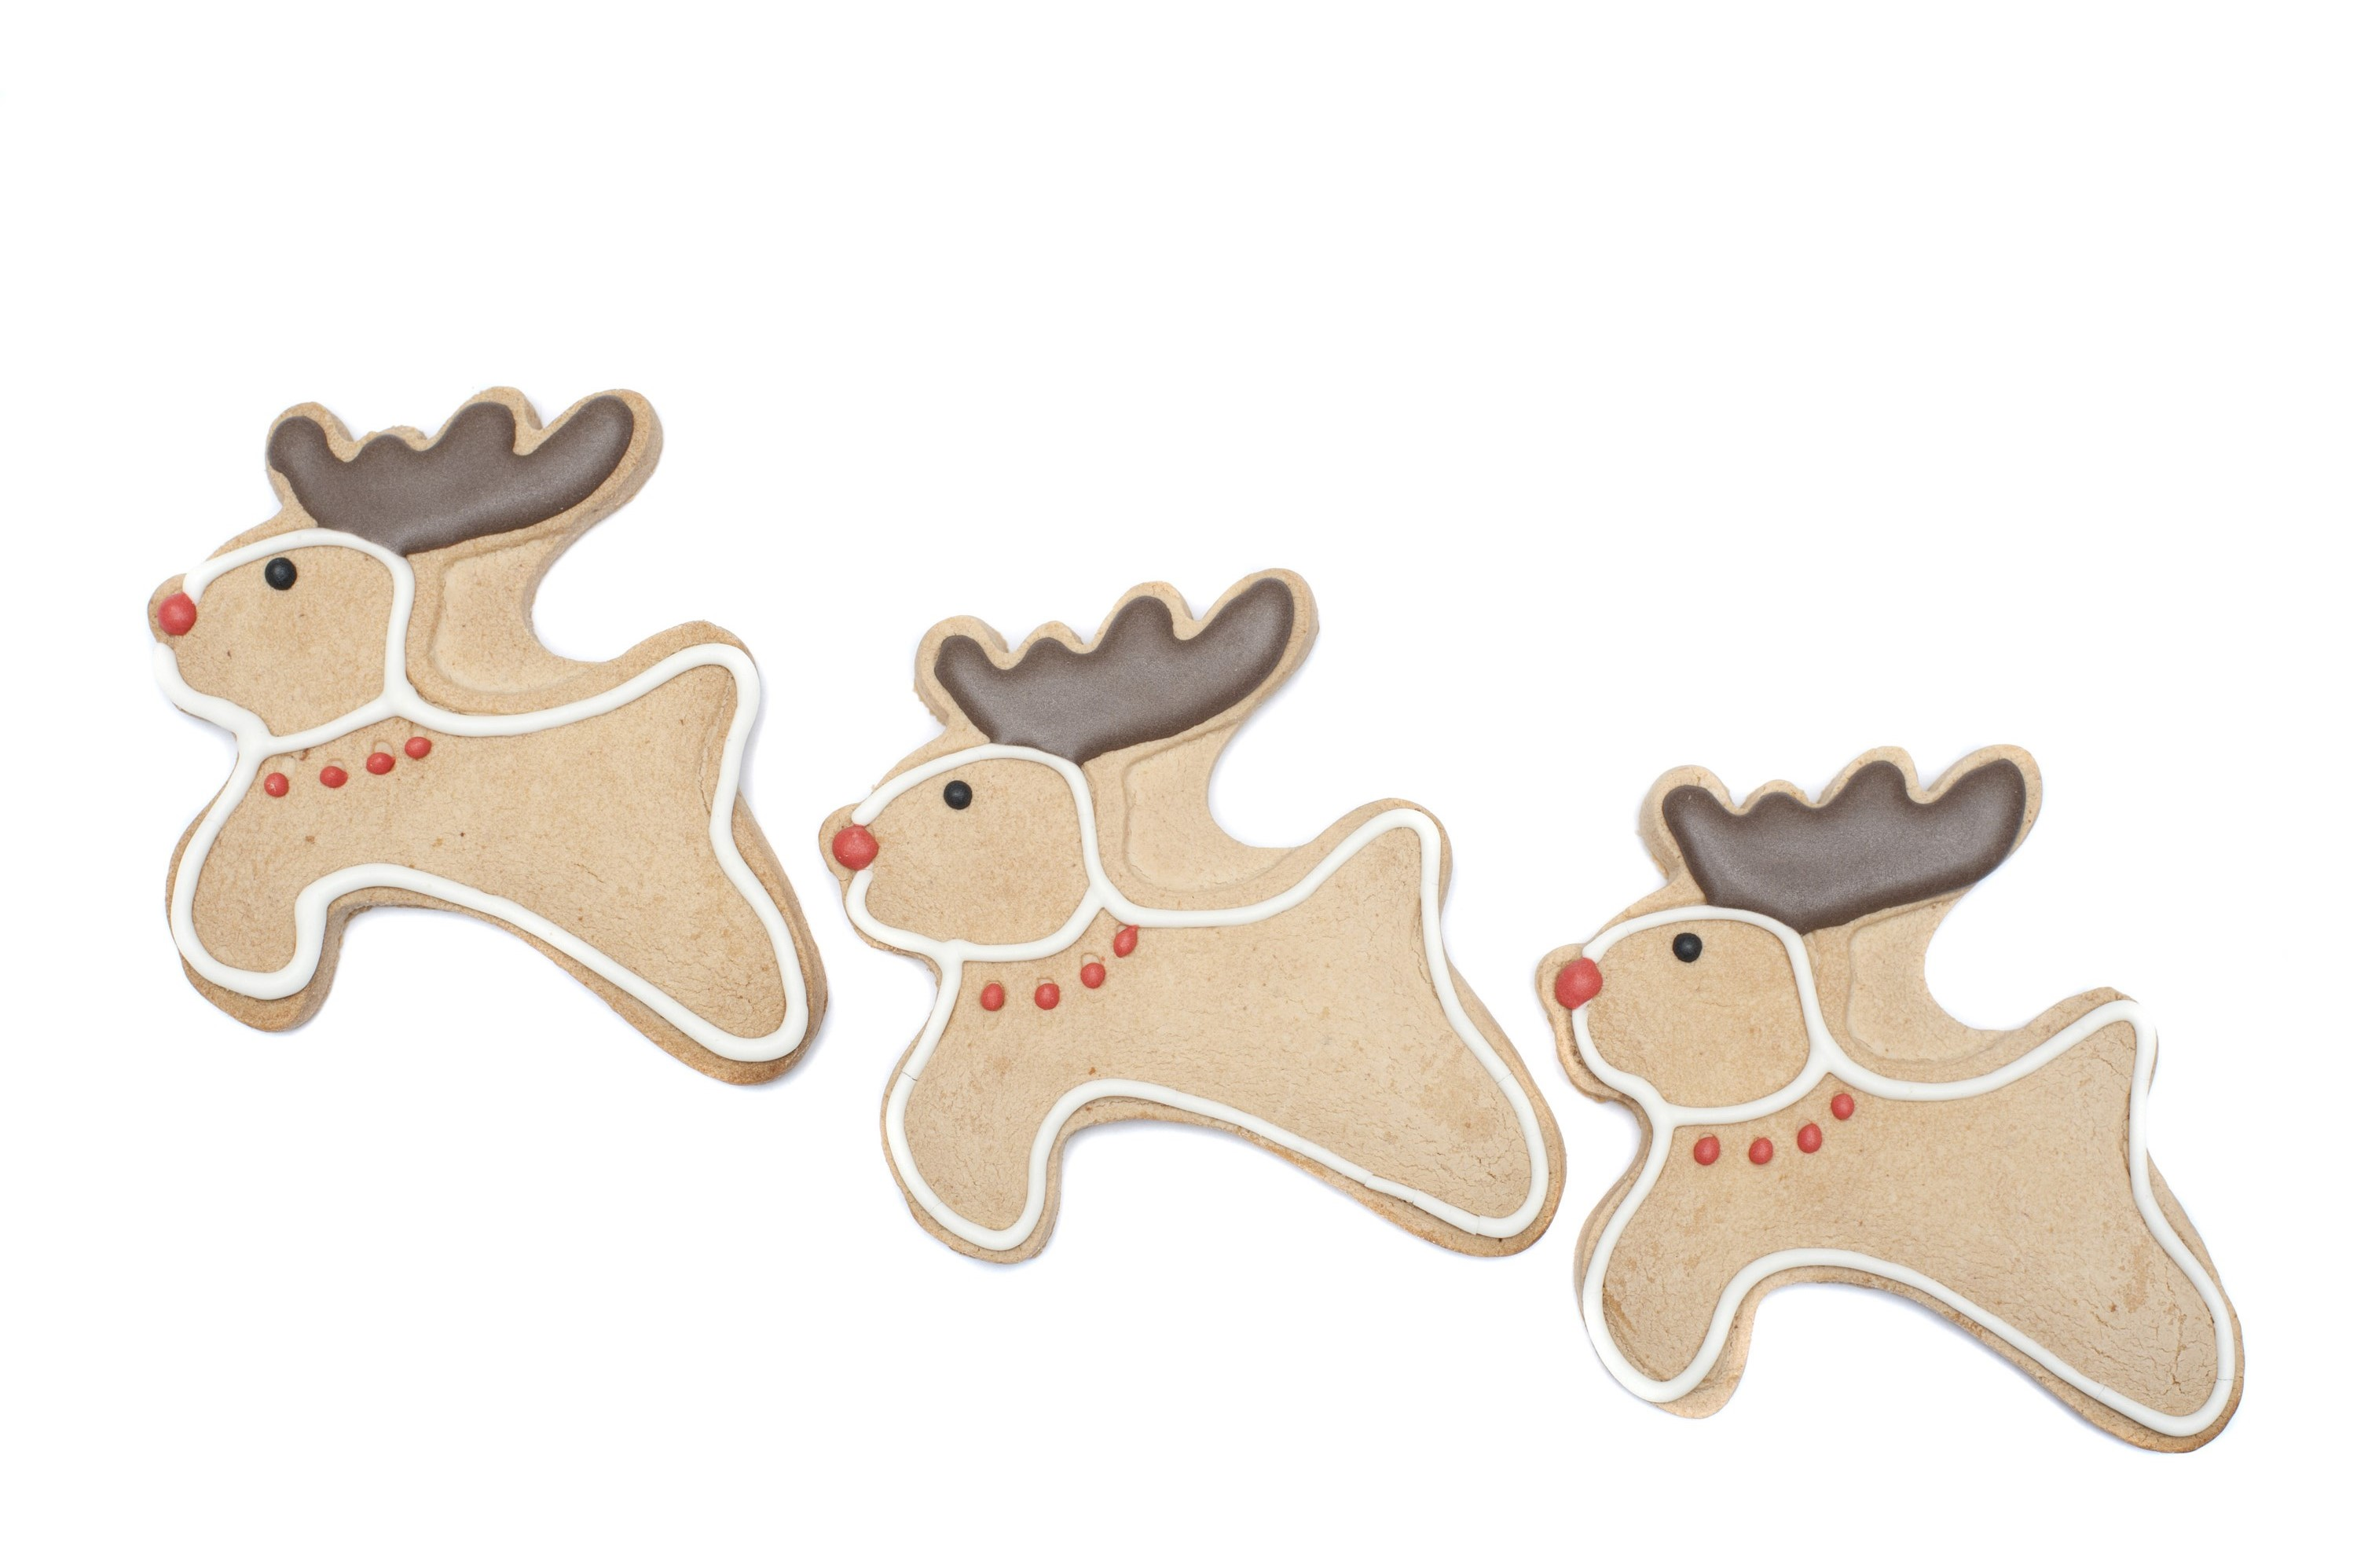 Three reindeer Christmas cookies with cute little leaping deer with red noses and chocolate antlers for a tasty seasonal treat isolated on a white background